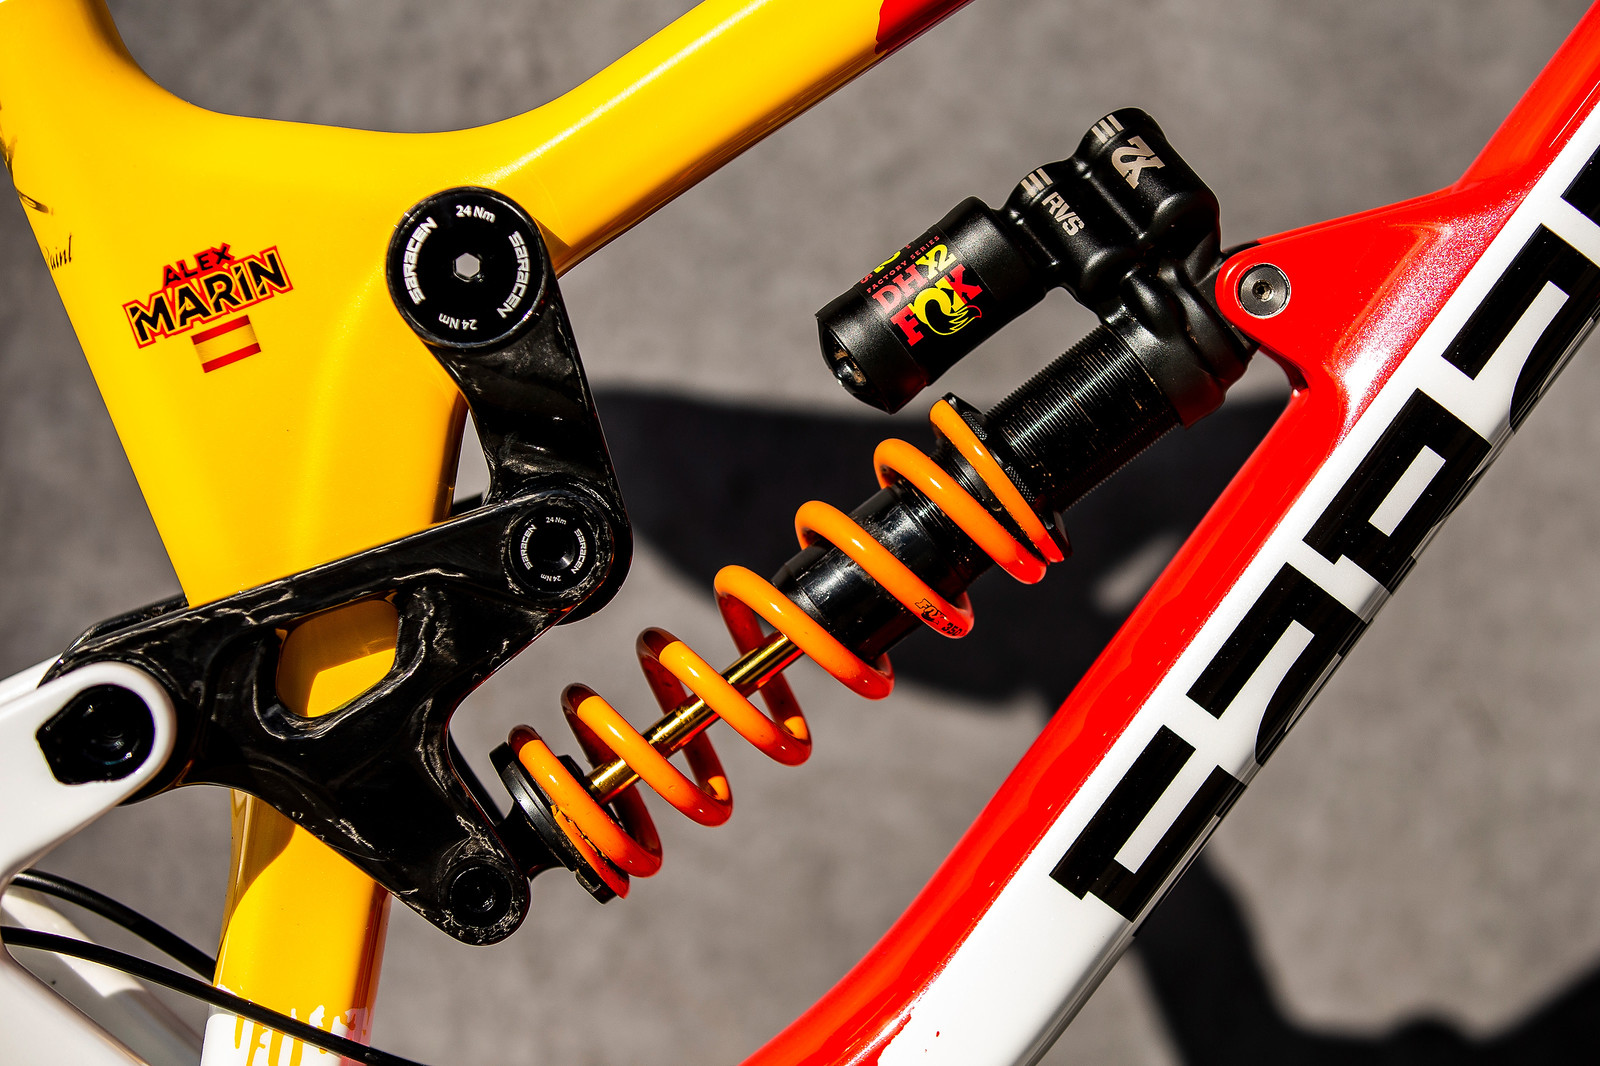 FOX DHX2 - WORLD CHAMPS BIKE - Alex Marin's Saracen Myst - Mountain Biking Pictures - Vital MTB